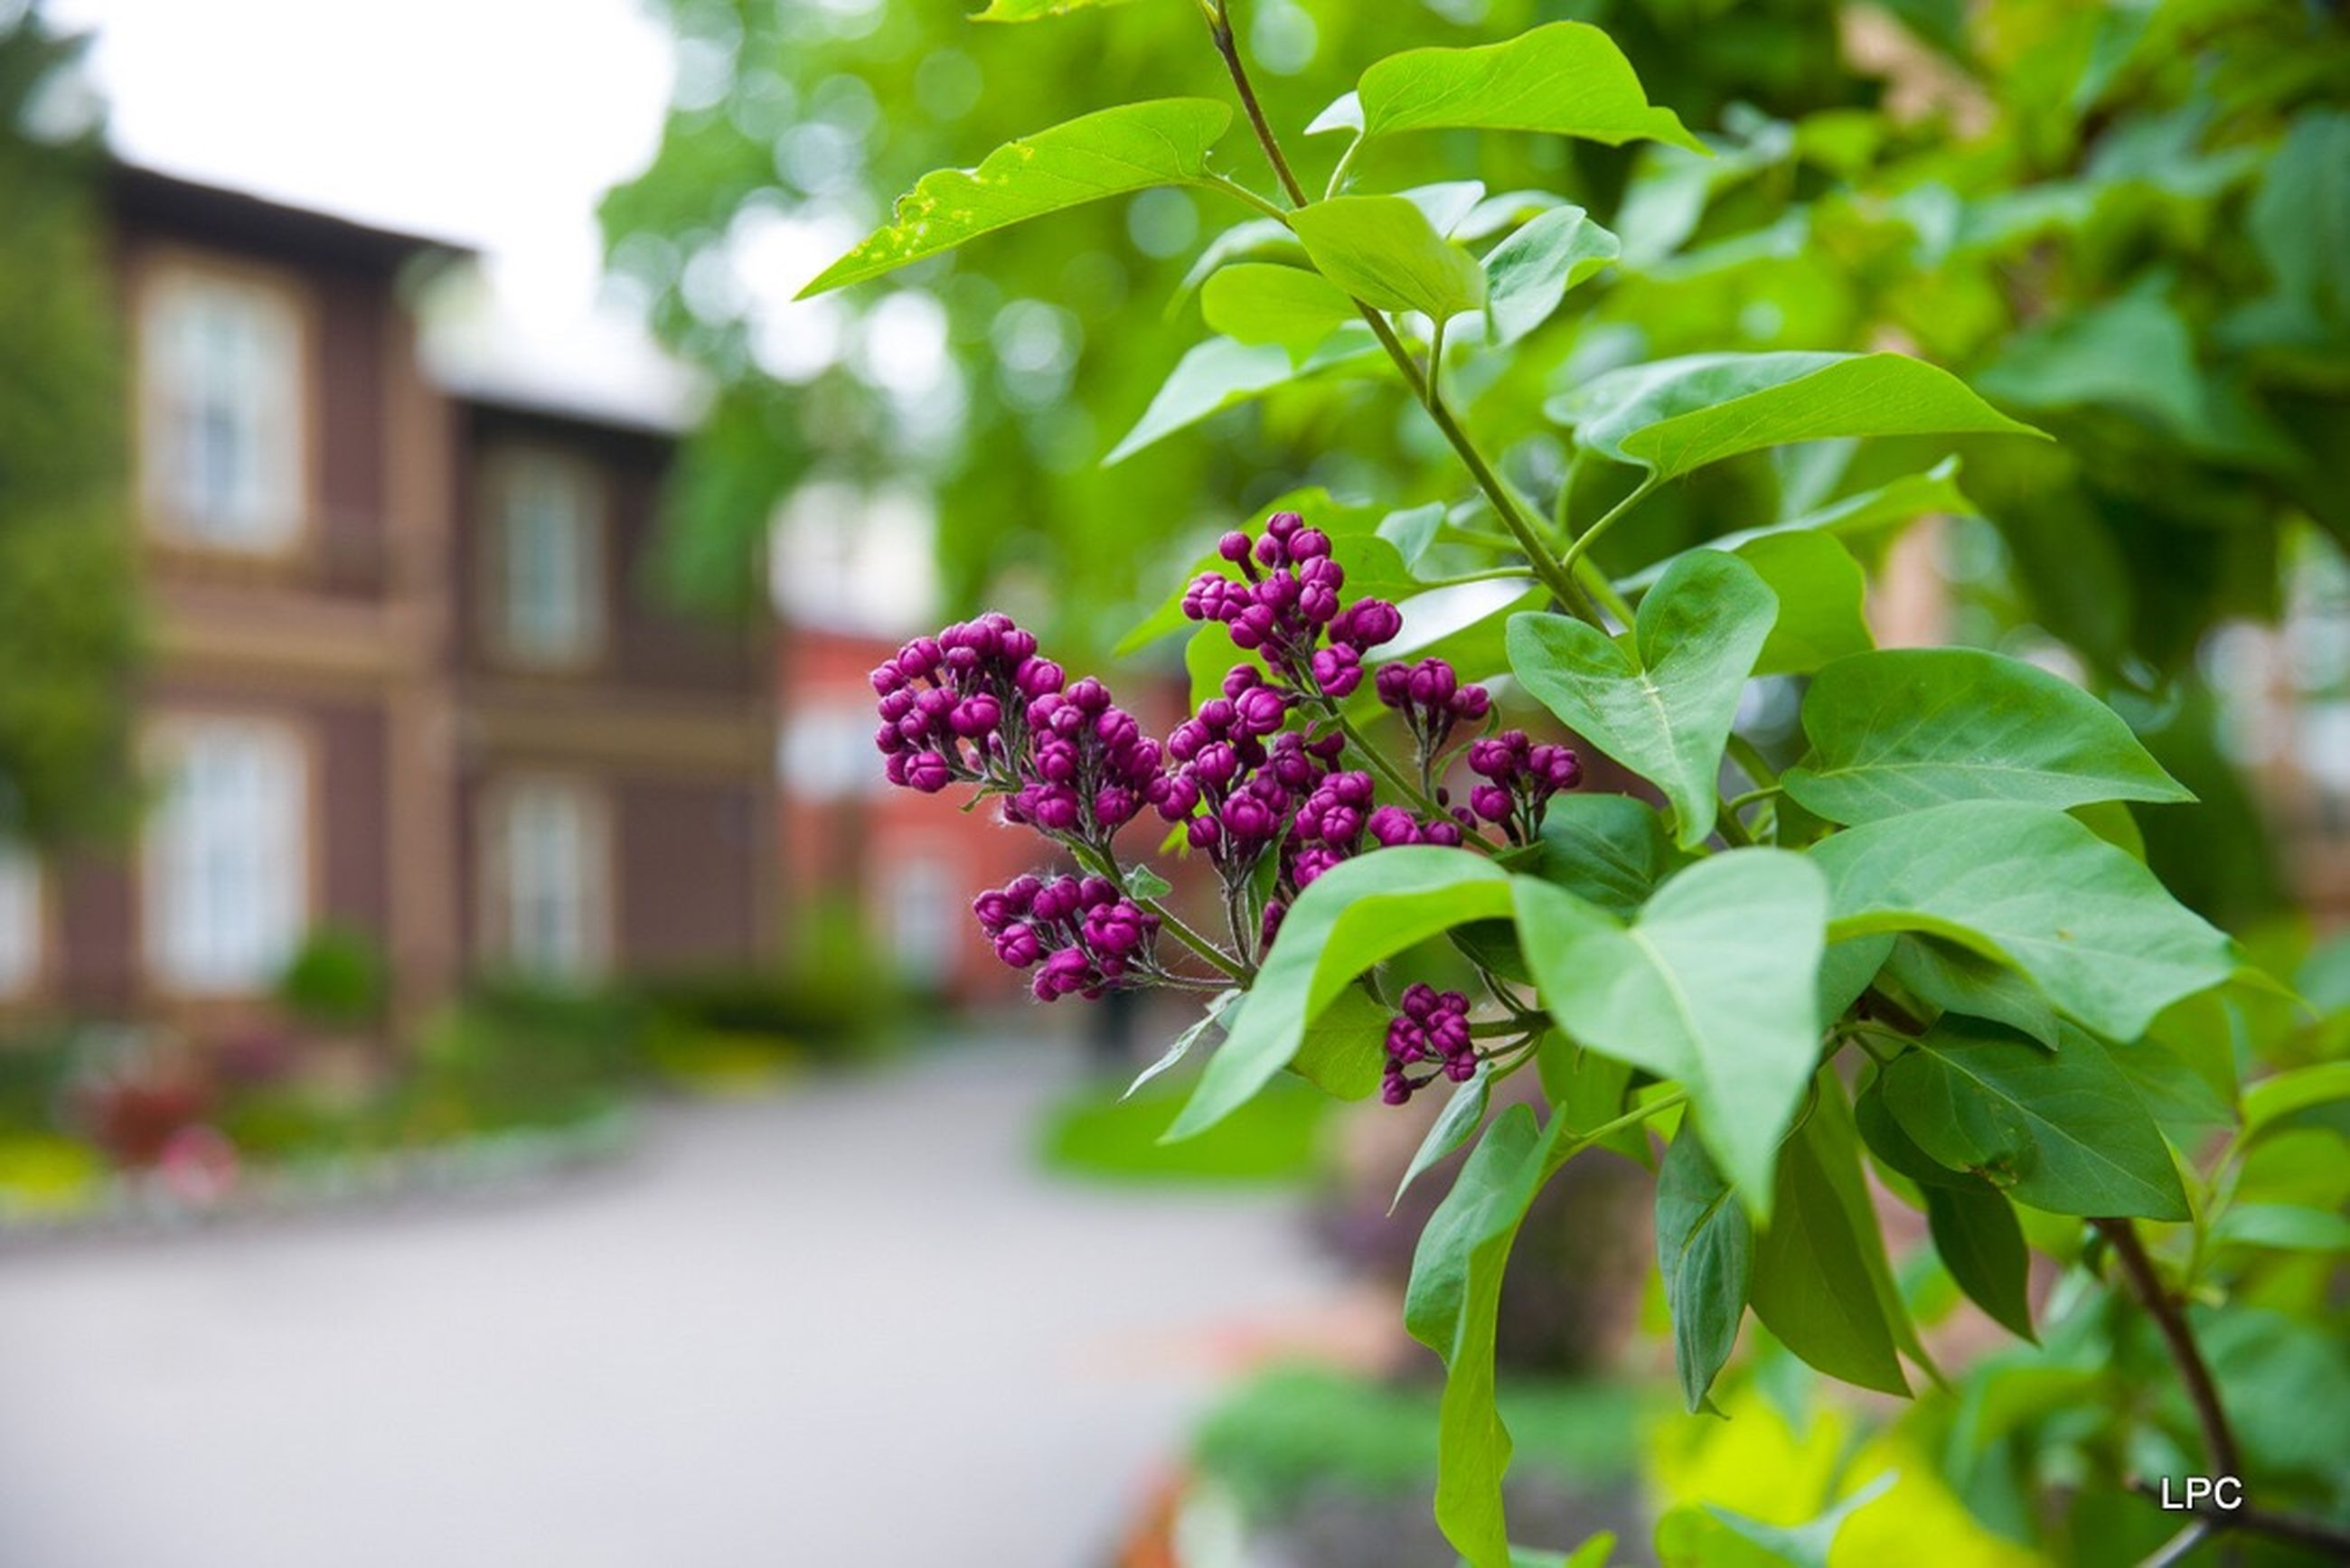 plant, flowering plant, flower, growth, vulnerability, leaf, fragility, plant part, freshness, focus on foreground, beauty in nature, close-up, nature, day, selective focus, no people, outdoors, pink color, building exterior, house, flower head, purple